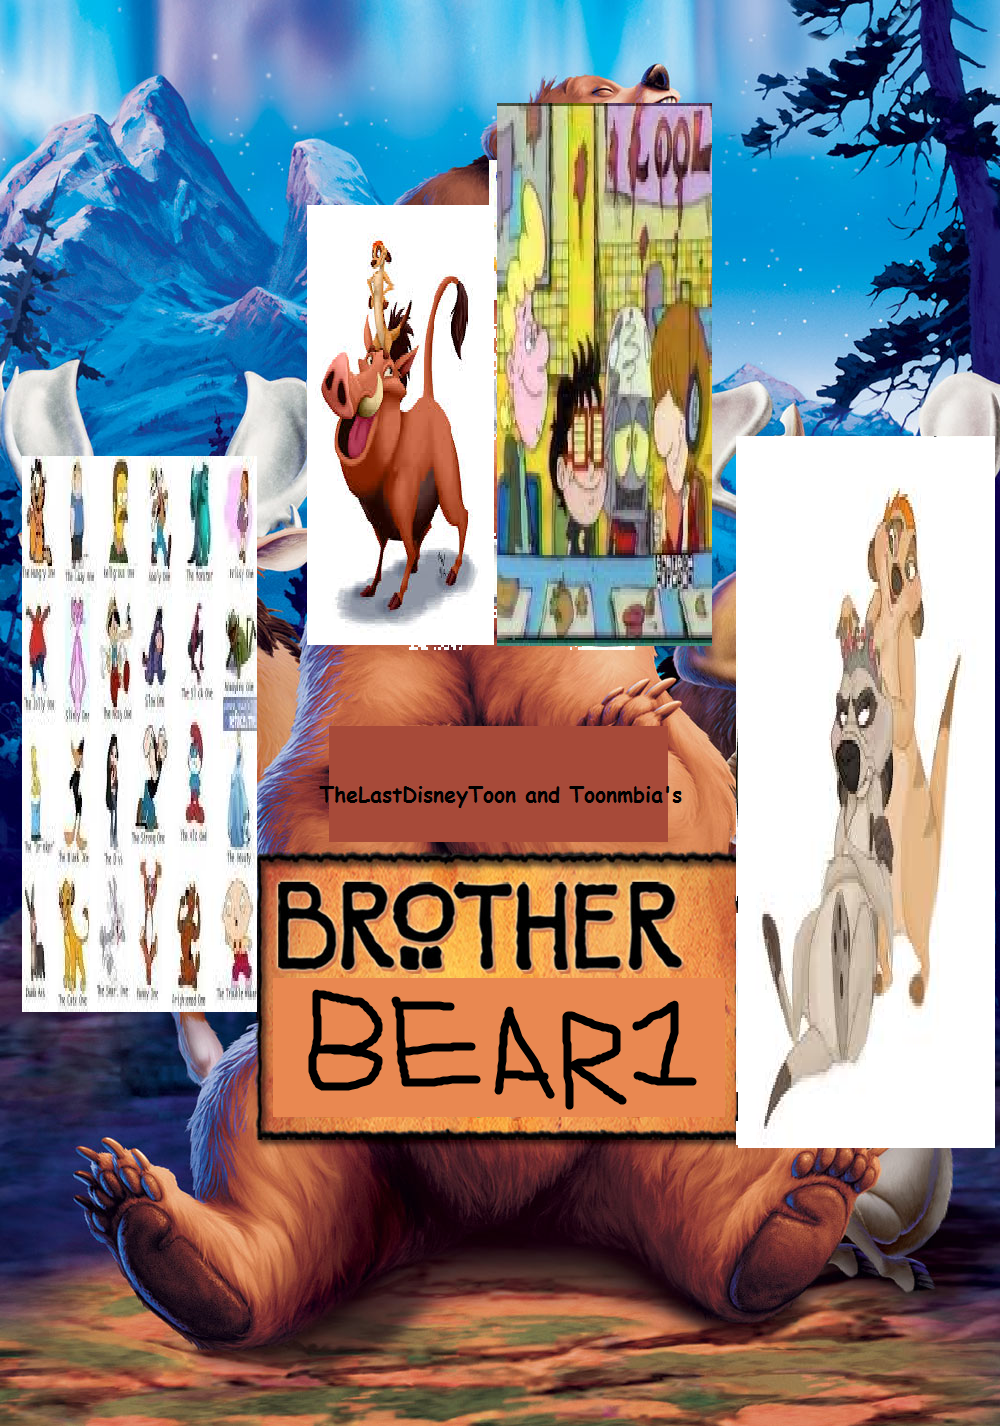 Brother Bear (TheLastDisneyToon and Toonmbia Style)